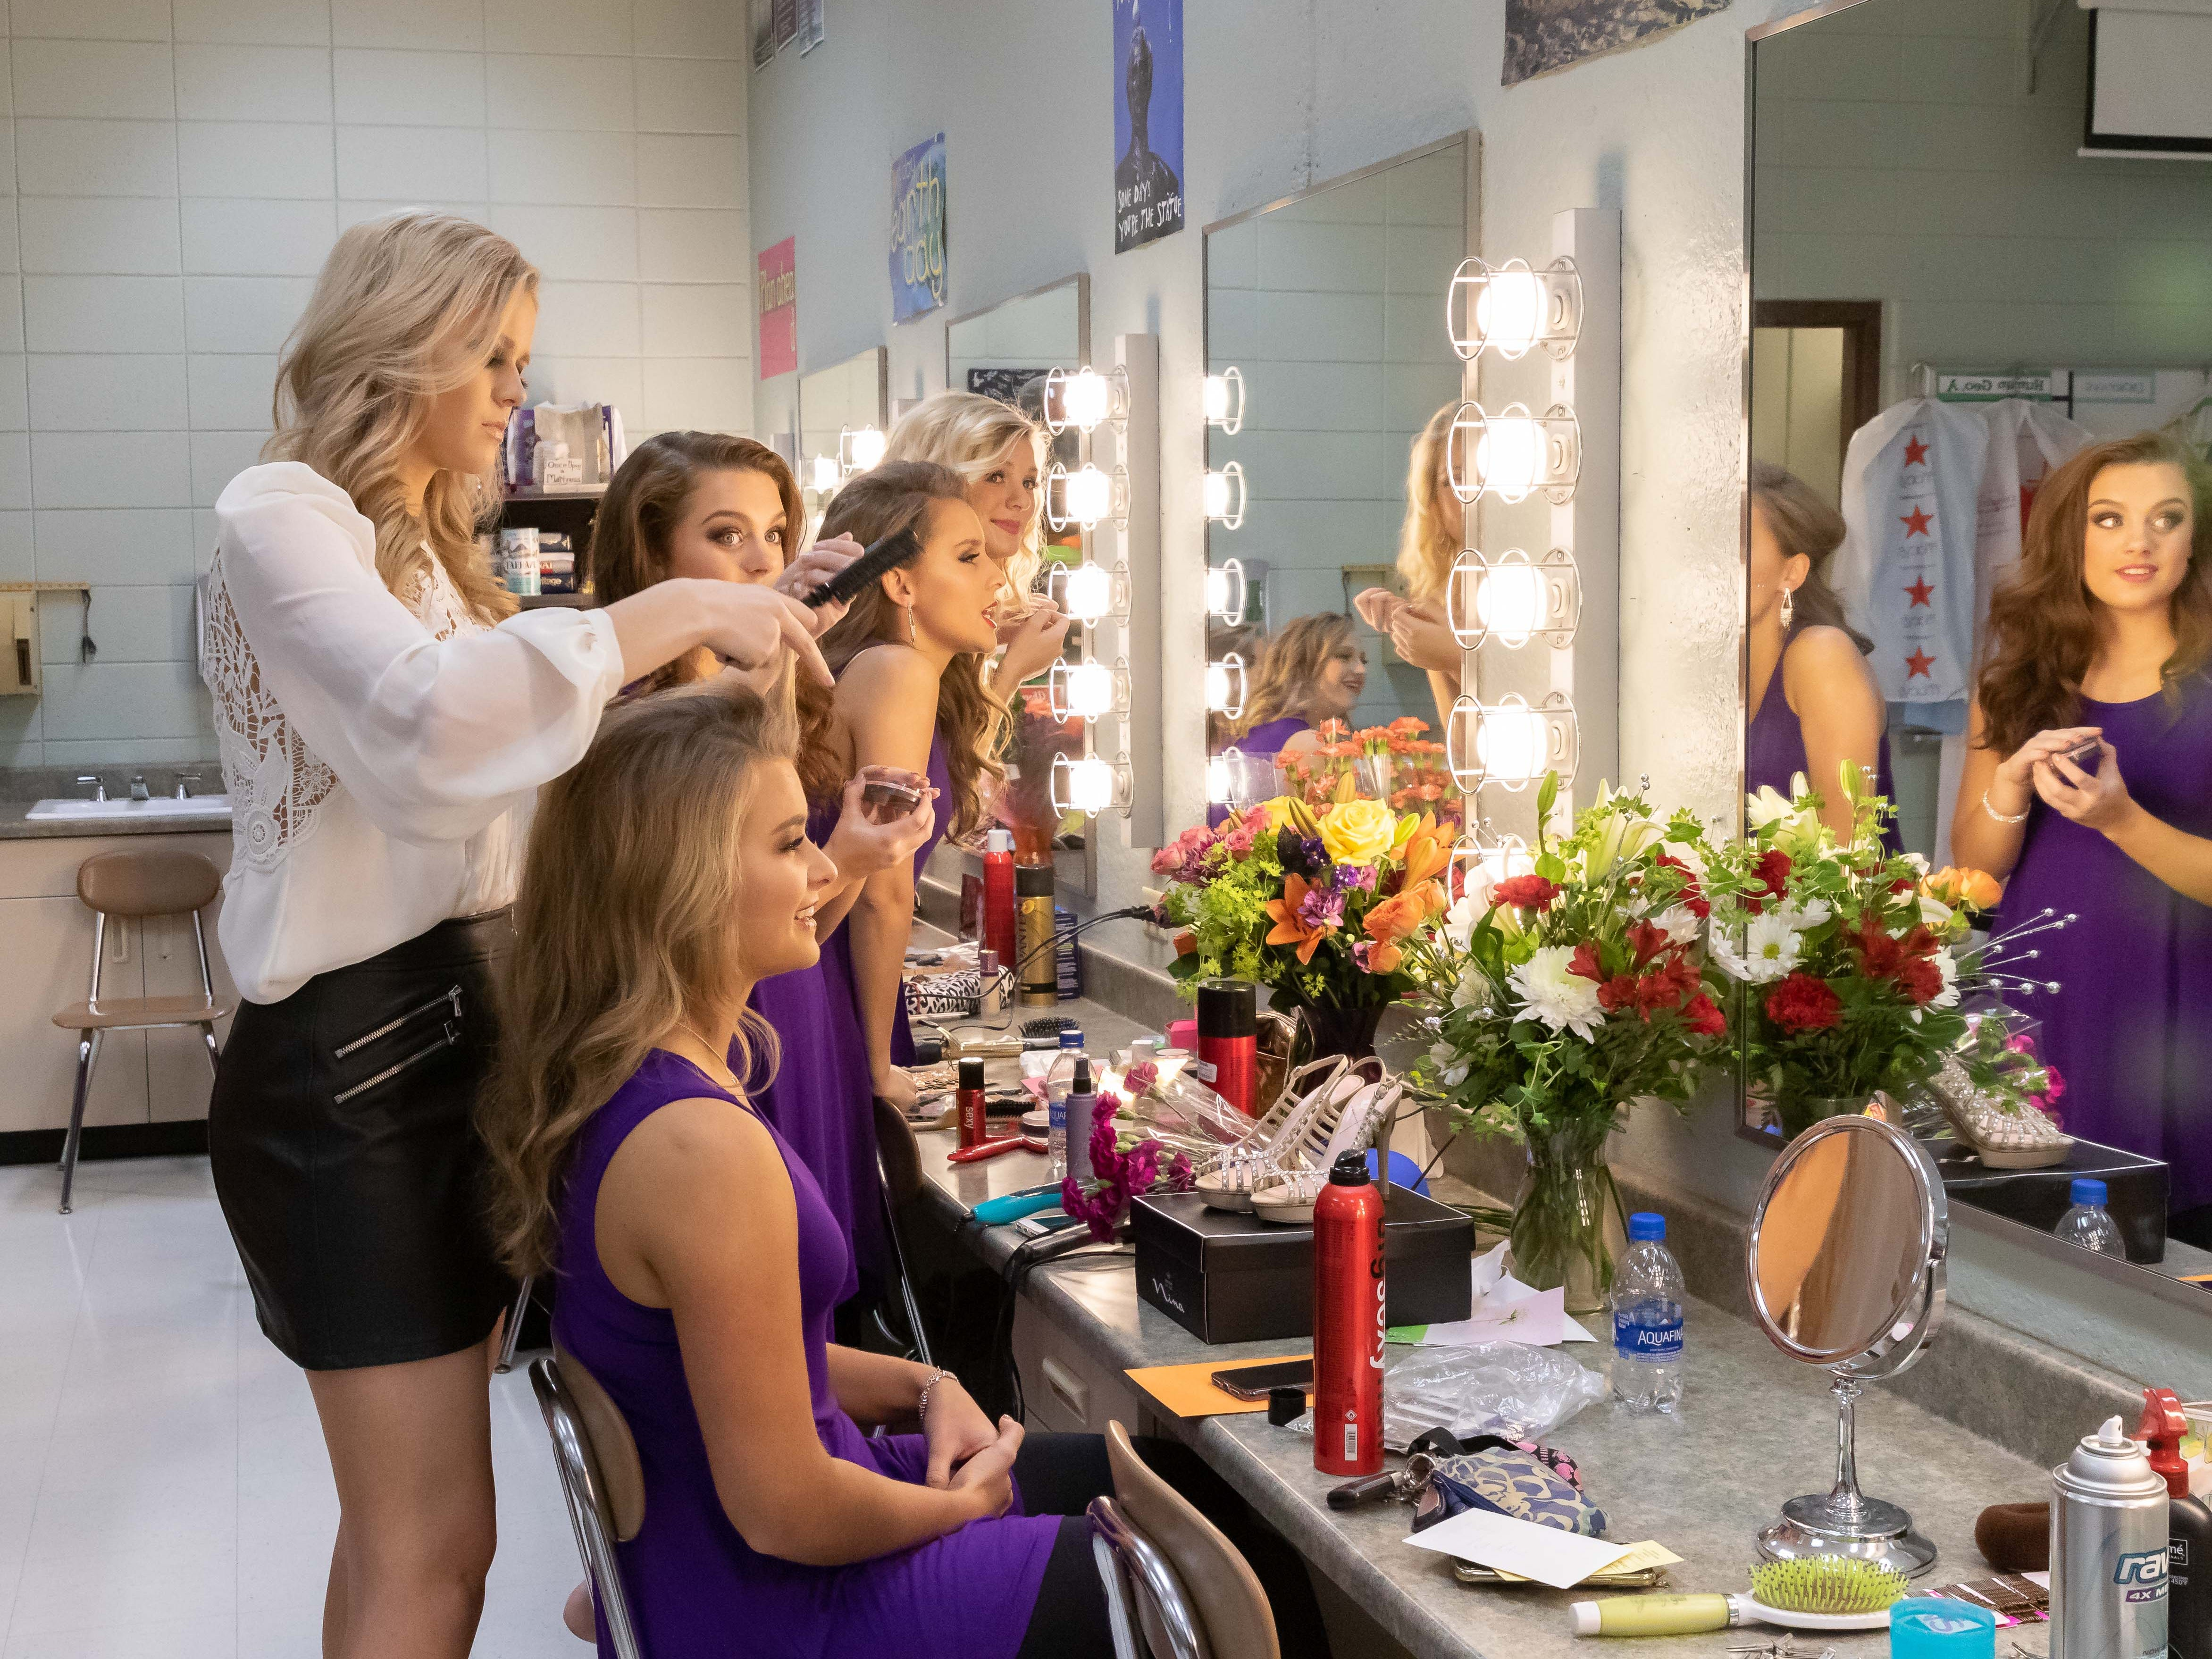 Contestants get ready for the 2019 Miss Wisconsin Rapids Area Scholarship Pageant on Saturday, Oct. 27, 2018, at the Performing Arts Center of Wisconsin Rapids.